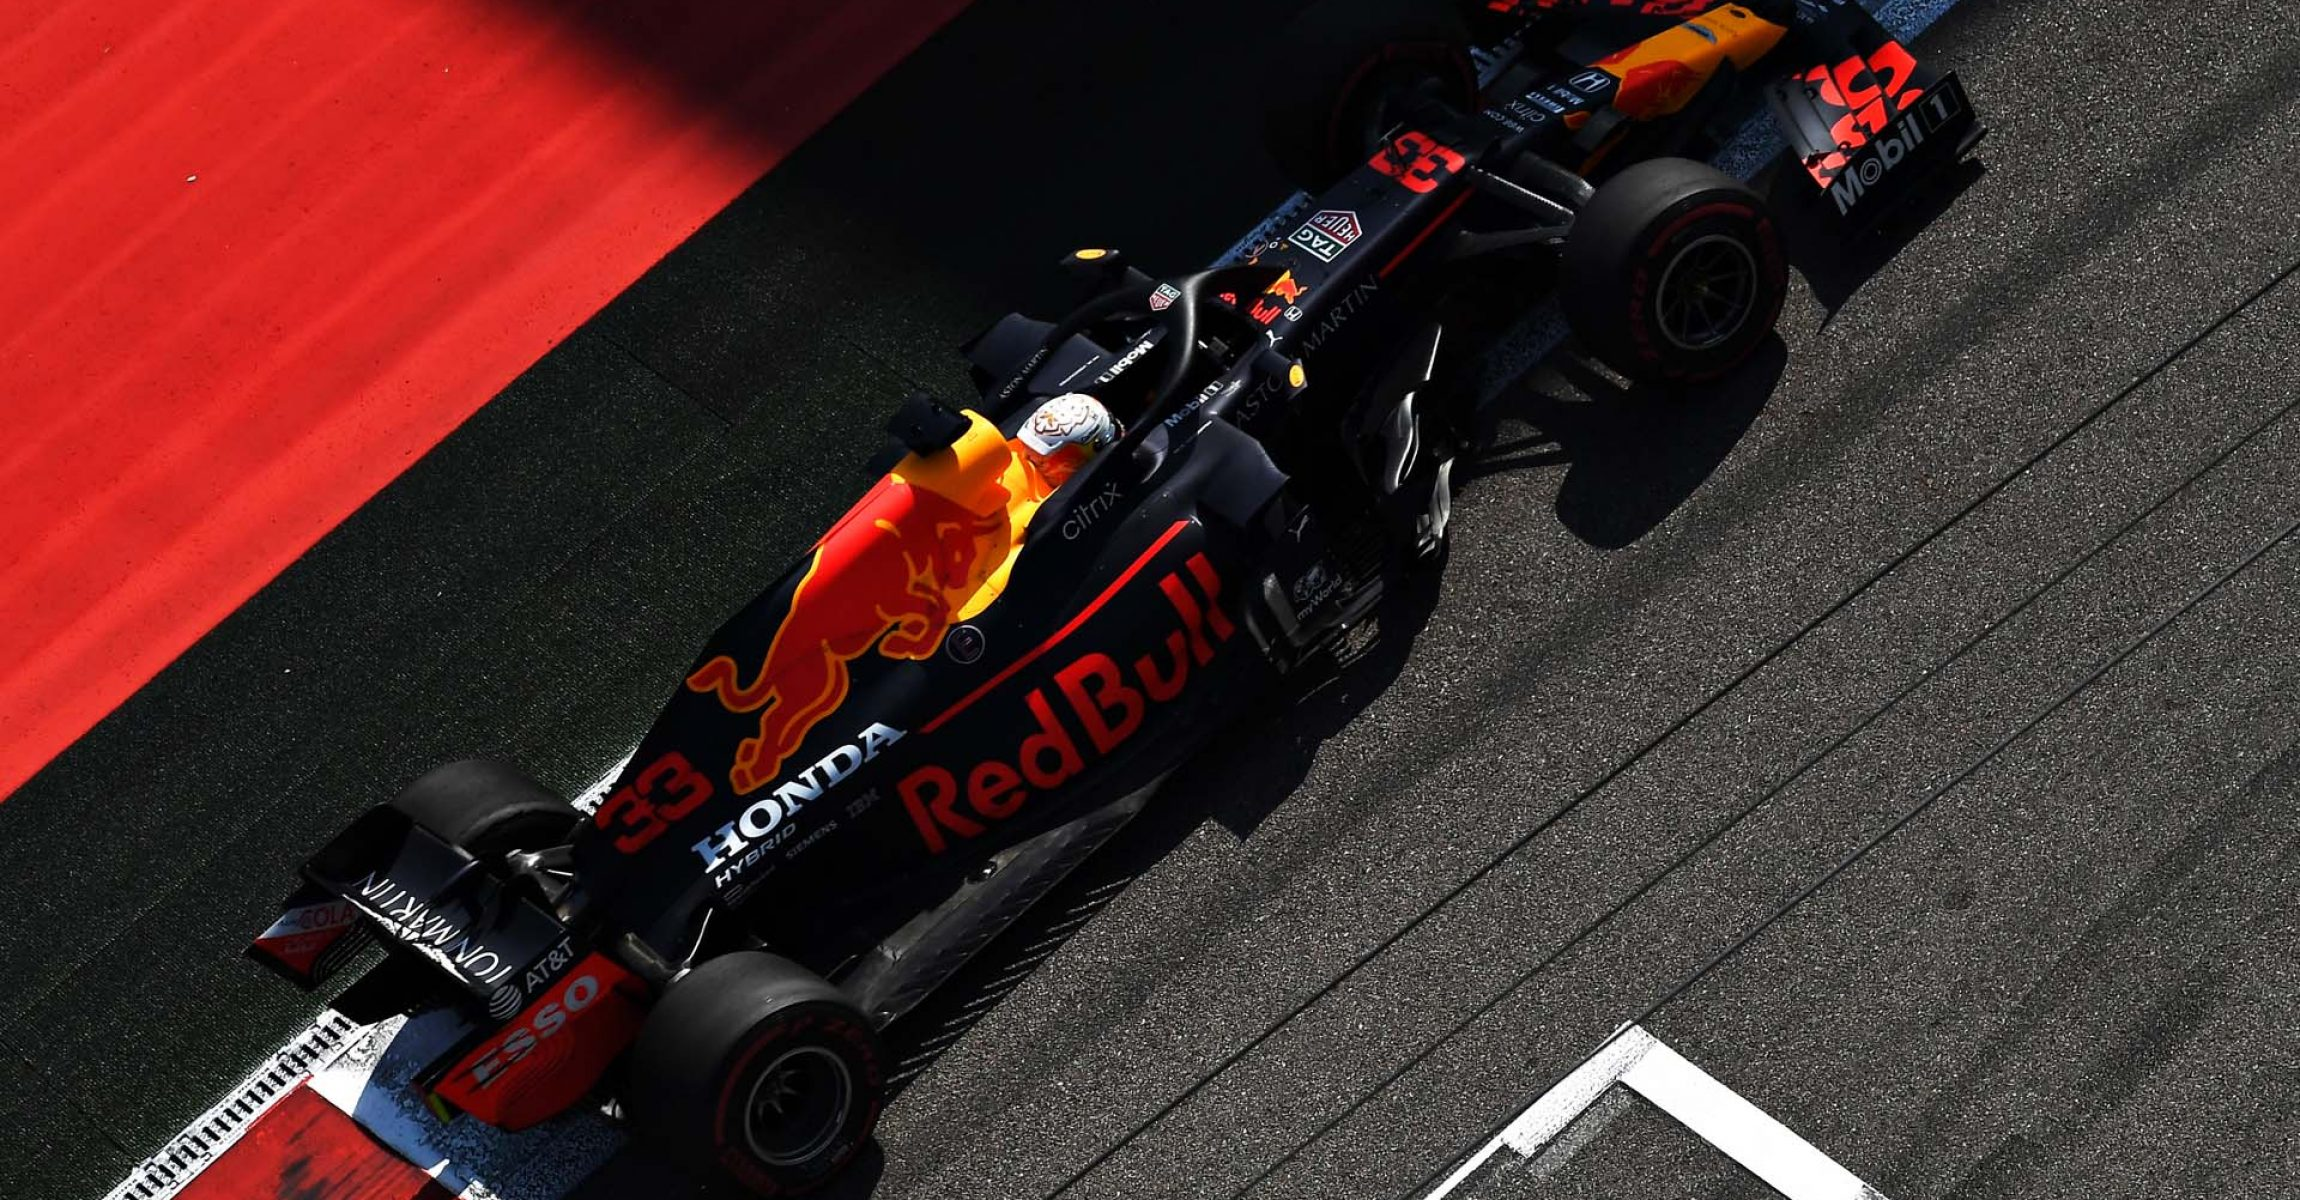 SOCHI, RUSSIA - SEPTEMBER 25: Max Verstappen of the Netherlands driving the (33) Aston Martin Red Bull Racing RB16 on track during practice ahead of the F1 Grand Prix of Russia at Sochi Autodrom on September 25, 2020 in Sochi, Russia. (Photo by Kirill Kudryavtsev - Pool/Getty Images)